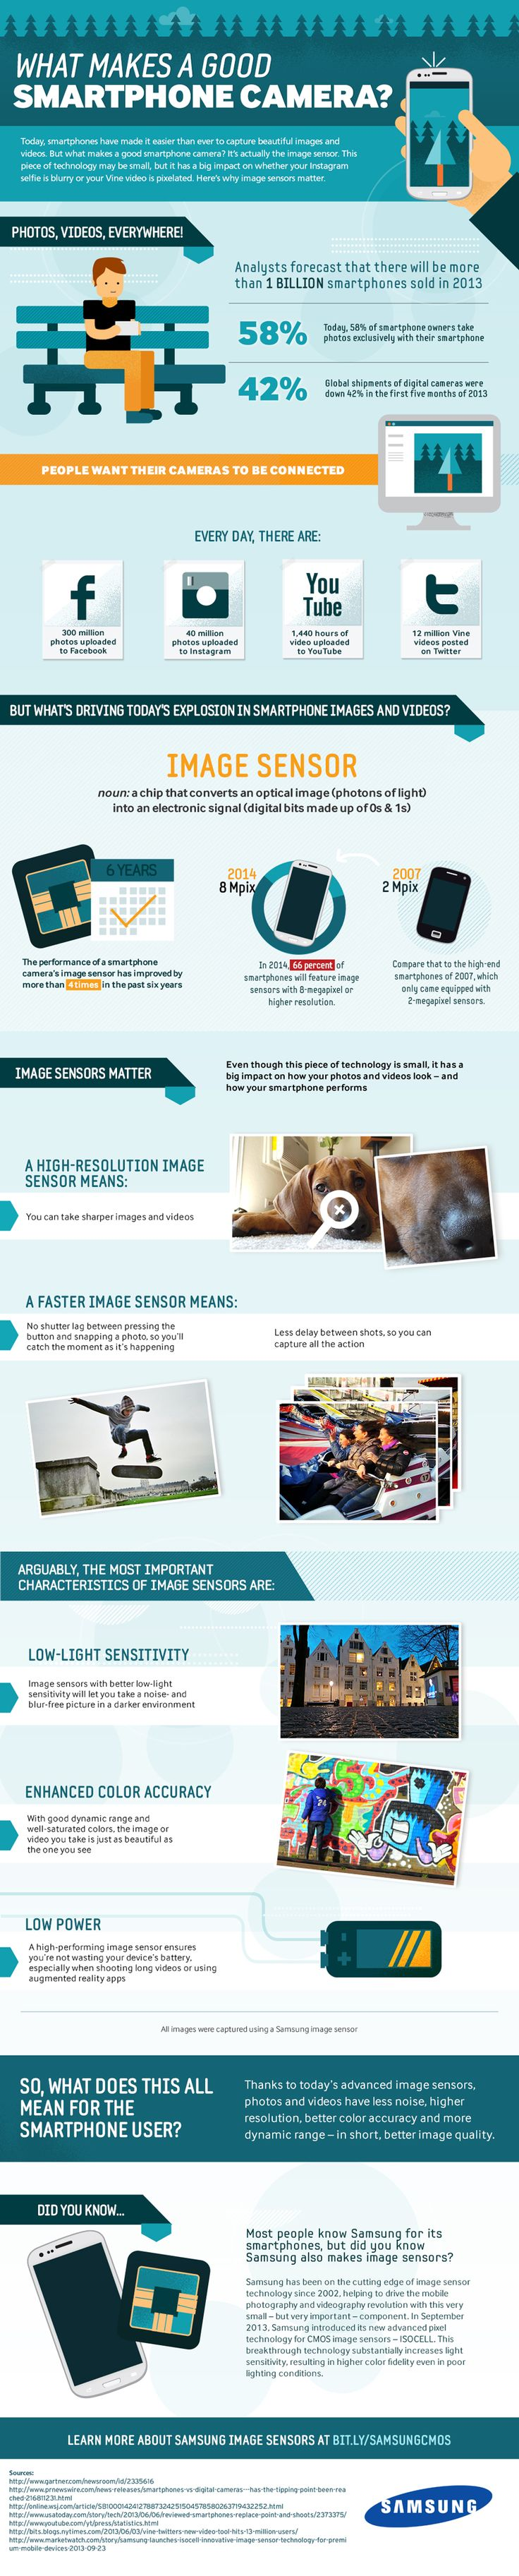 What Makes A Good Smartphone Camera? #Infographic #Technology #Smartphone